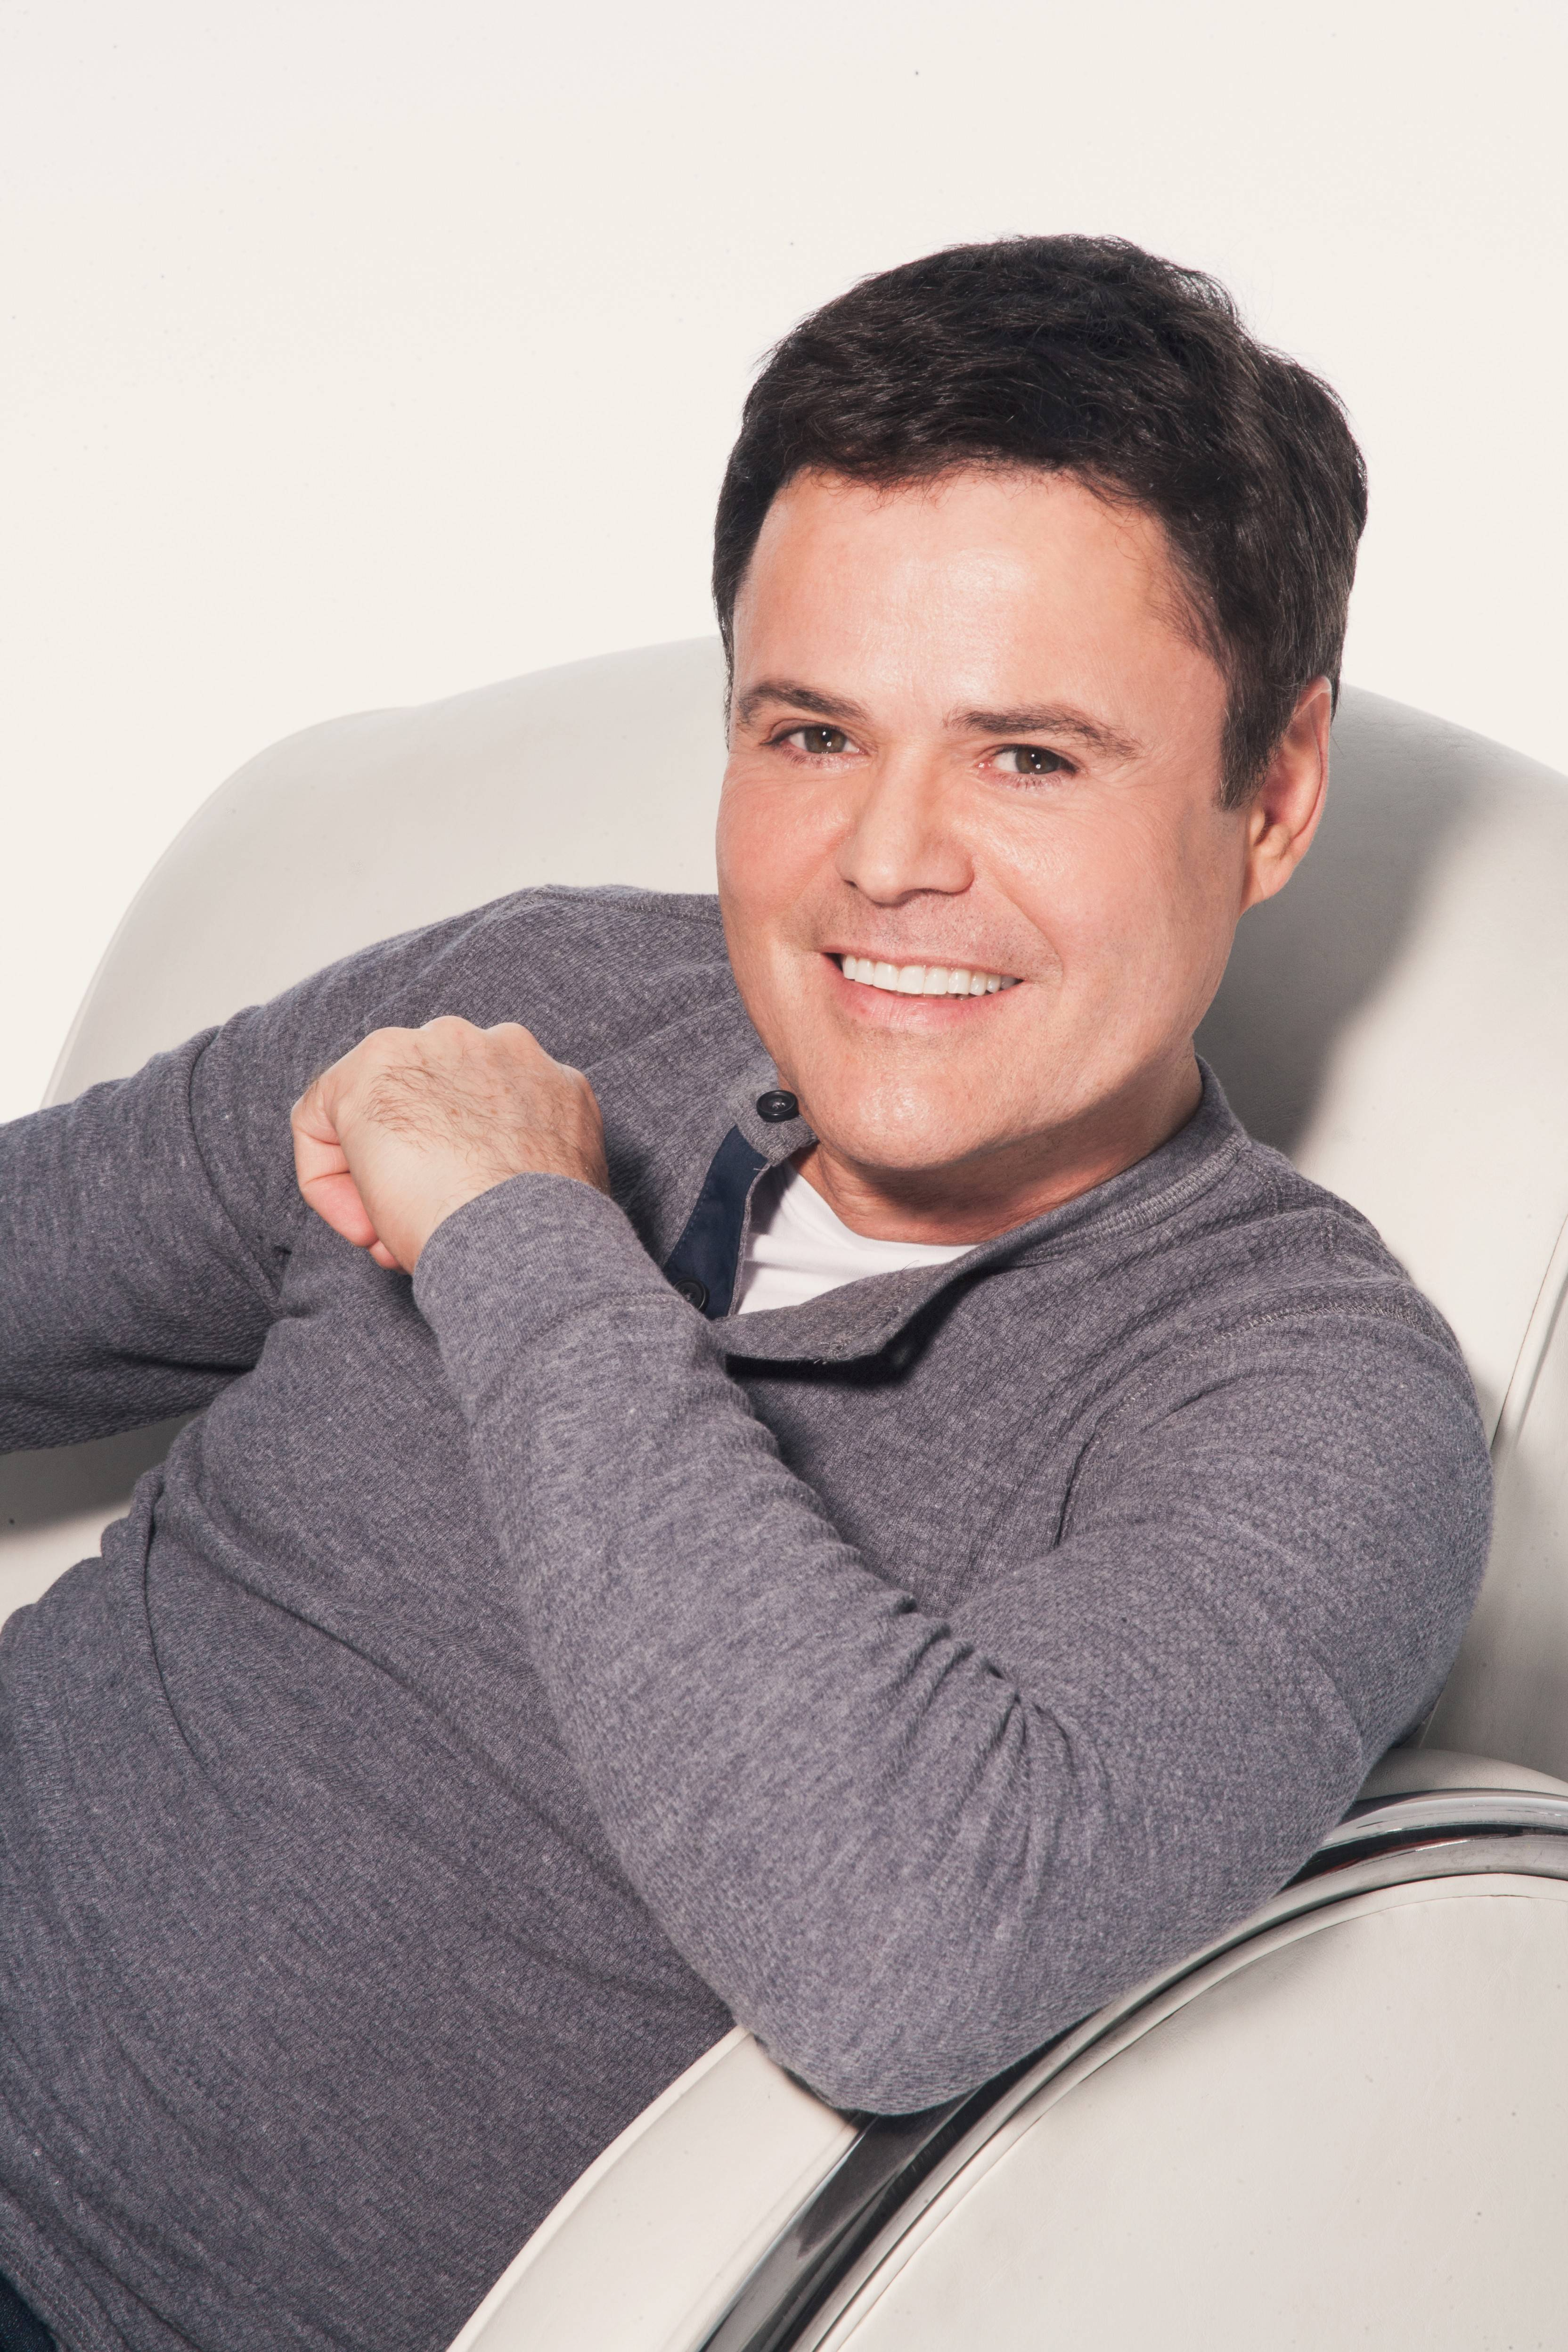 Donny Osmond will play seven shows at Aurora's Paramount Theatre with his sister Marie.